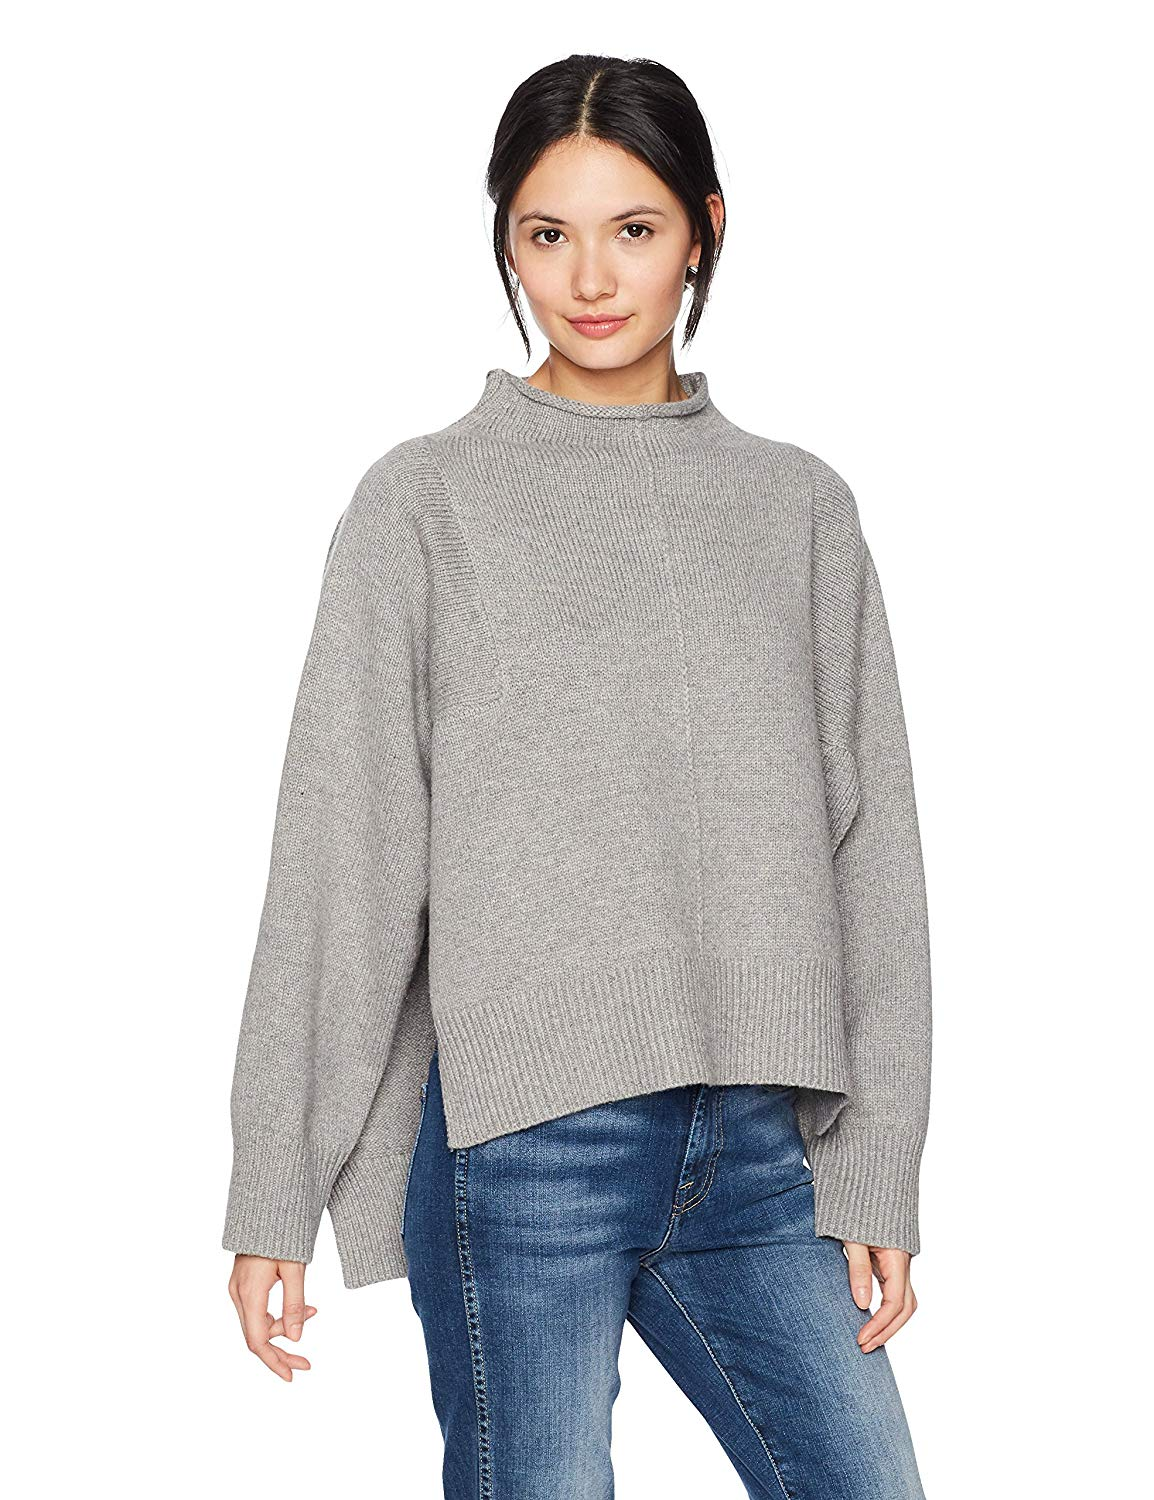 Lifestyle blogger Lexi of Glitter, Inc. shares her favorite weekly finds from around the web, including this MOON RIVER Women's Mock Neck Boxy Boyfriend Sweater from Amazon. | glitterinc.com | @glitterinc